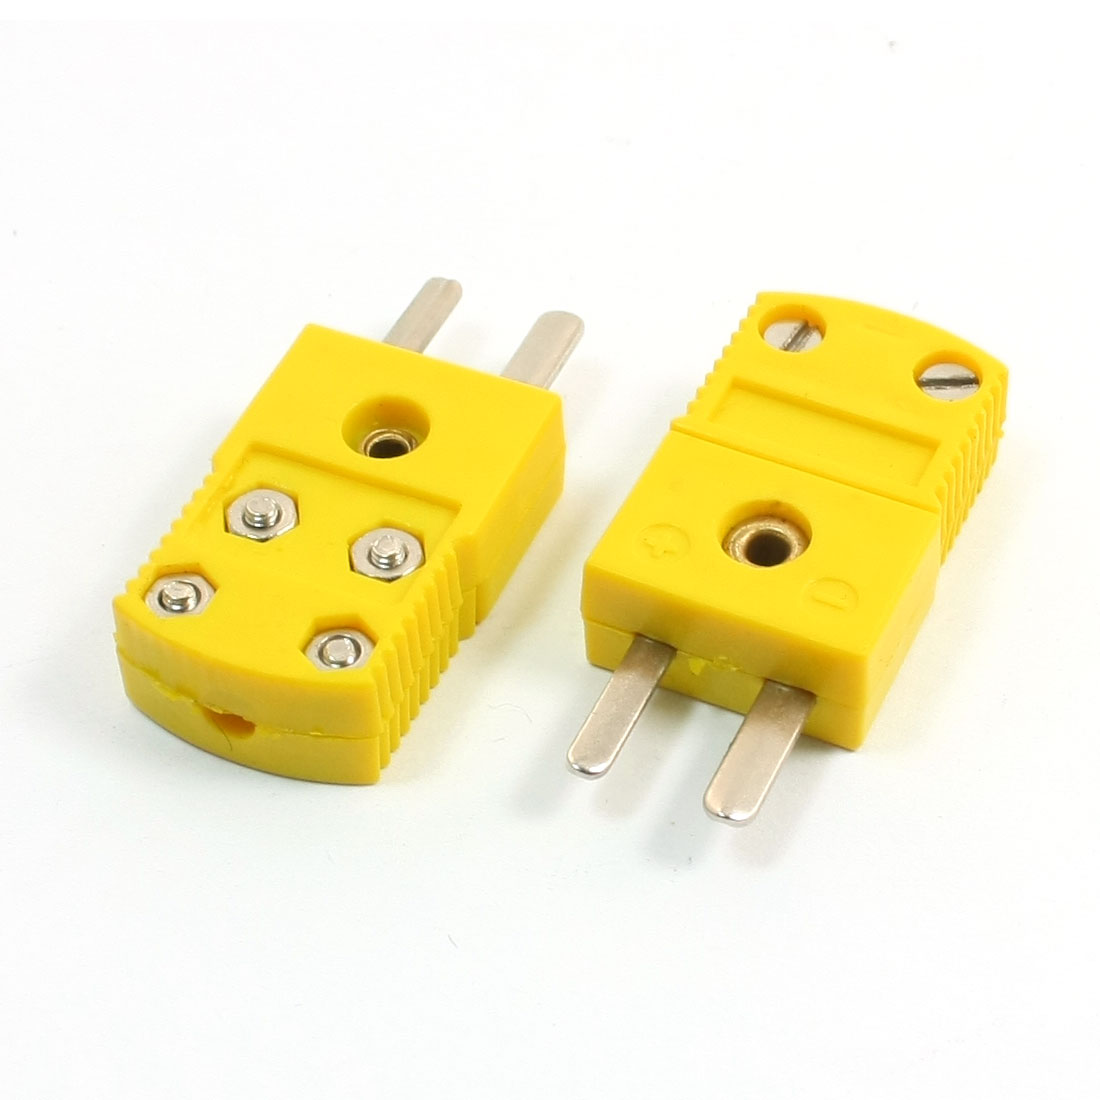 2Pcs RTD Circuits Male Plugs Thermometer Thermocouple Adapter Yellow